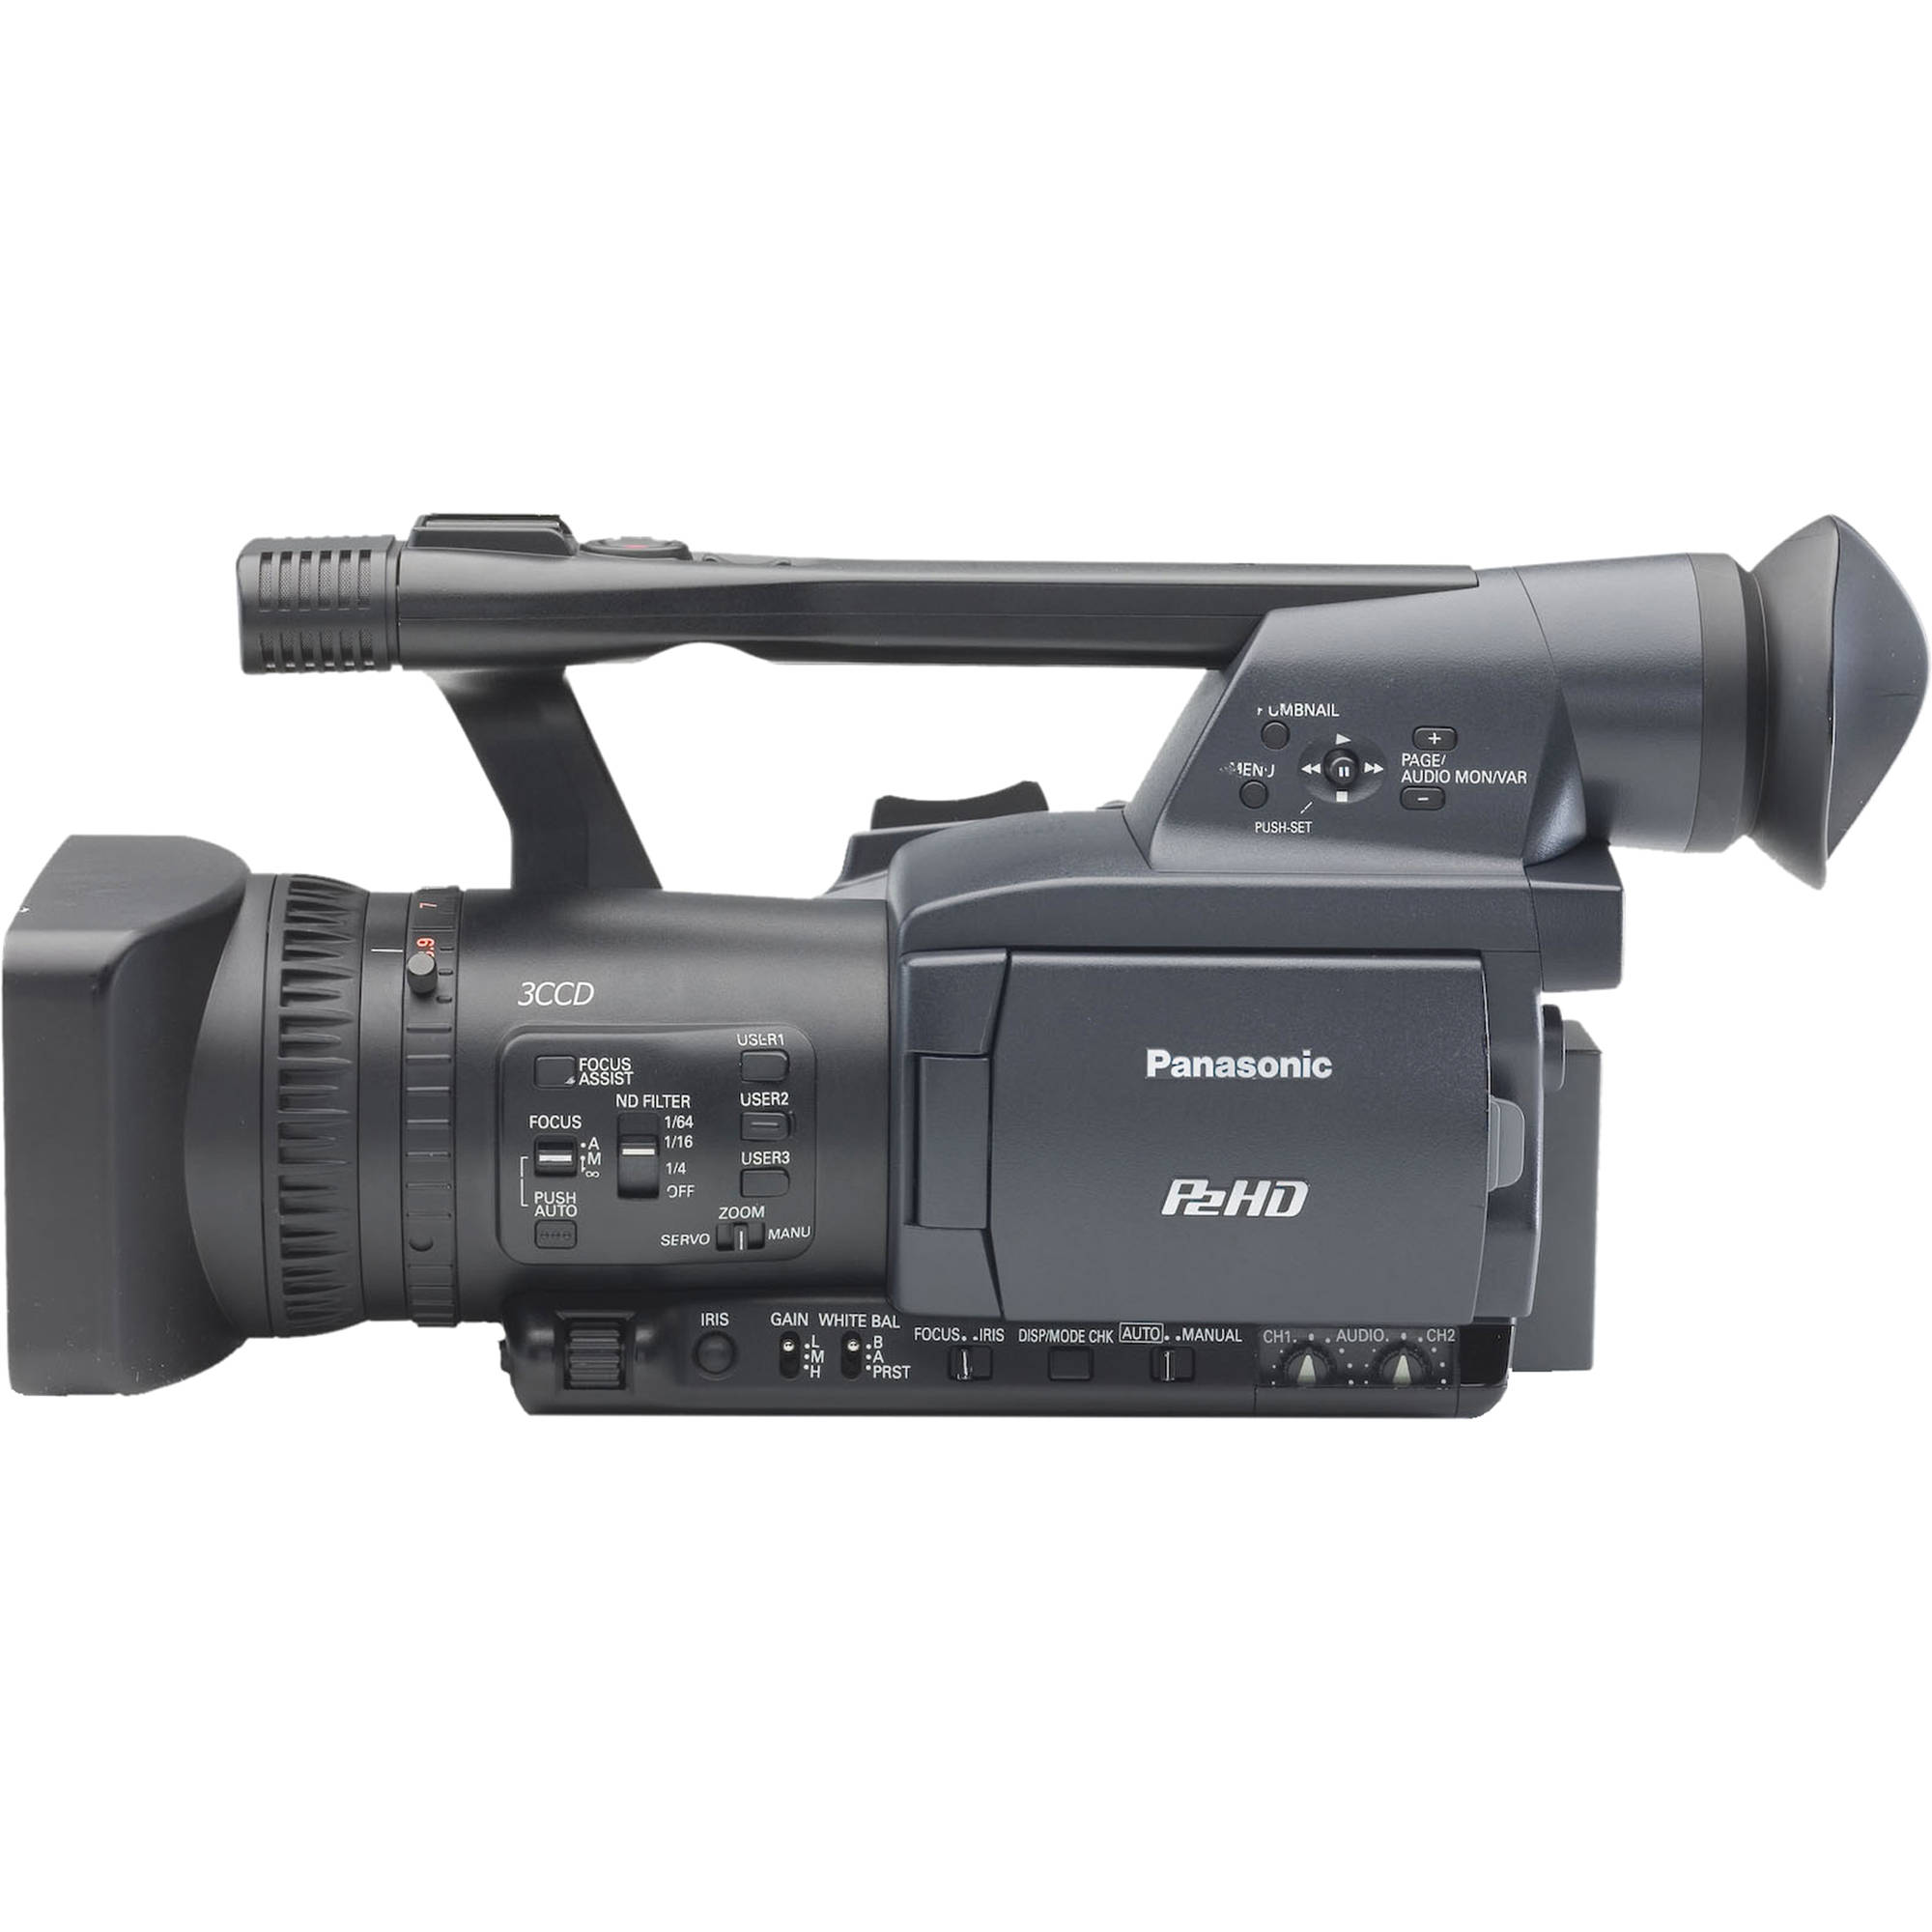 Panasonic Ag Hpx170 P2hd Solid State Camcorder Aghpx170puj B Amp H border=